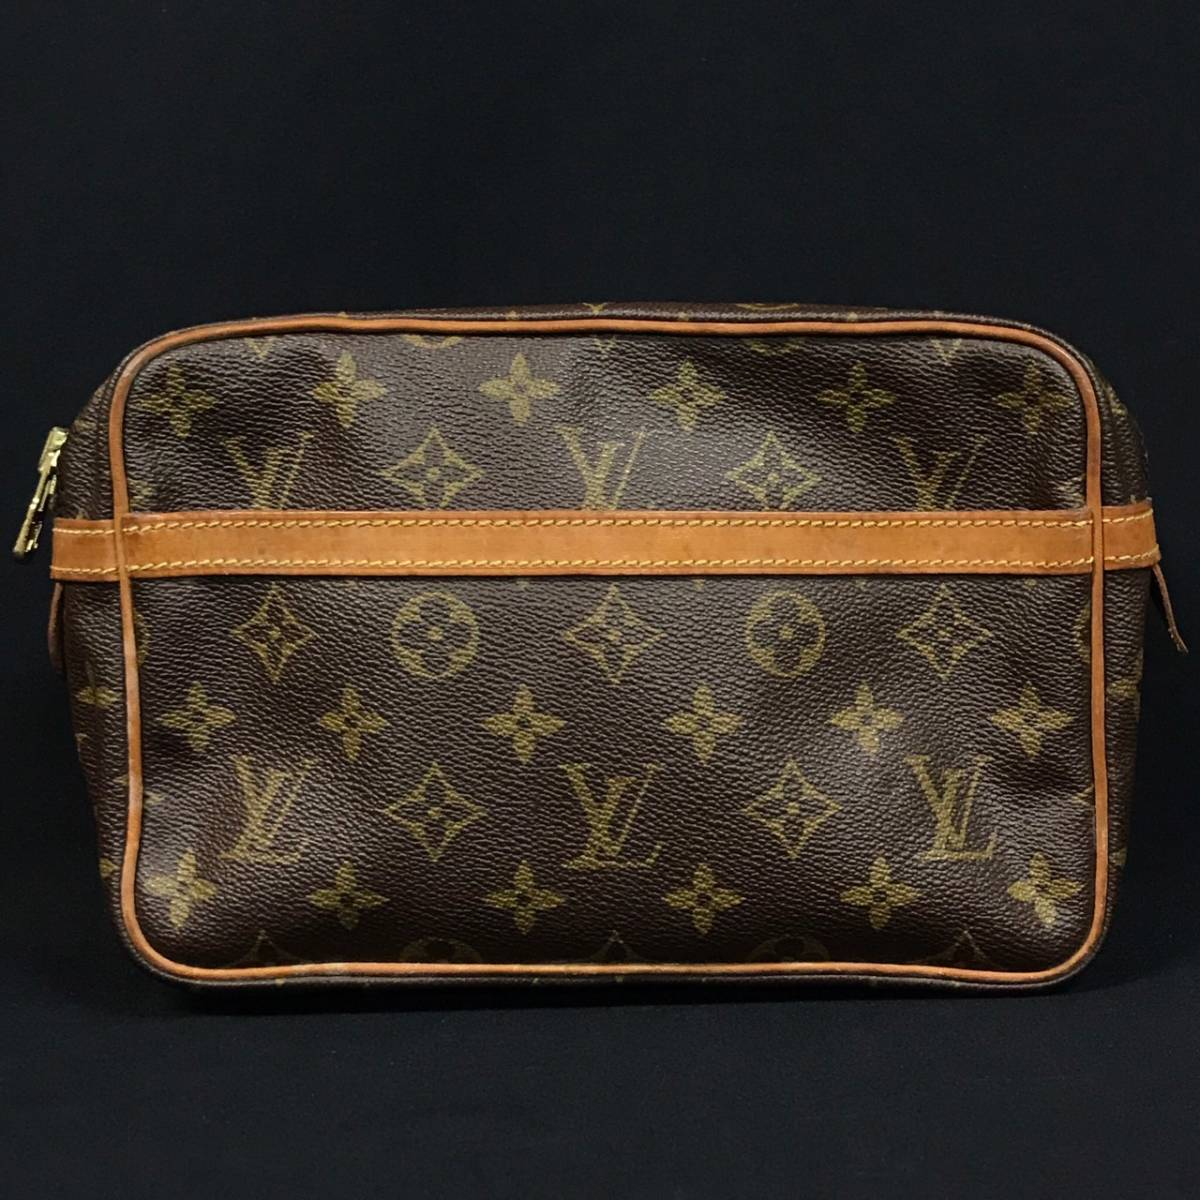 B19s02T LOUIS VUITTON ルイヴィトン モノグラム コンピエーニュ セカンドバッグ クラッチバッグ ポーチ レザー